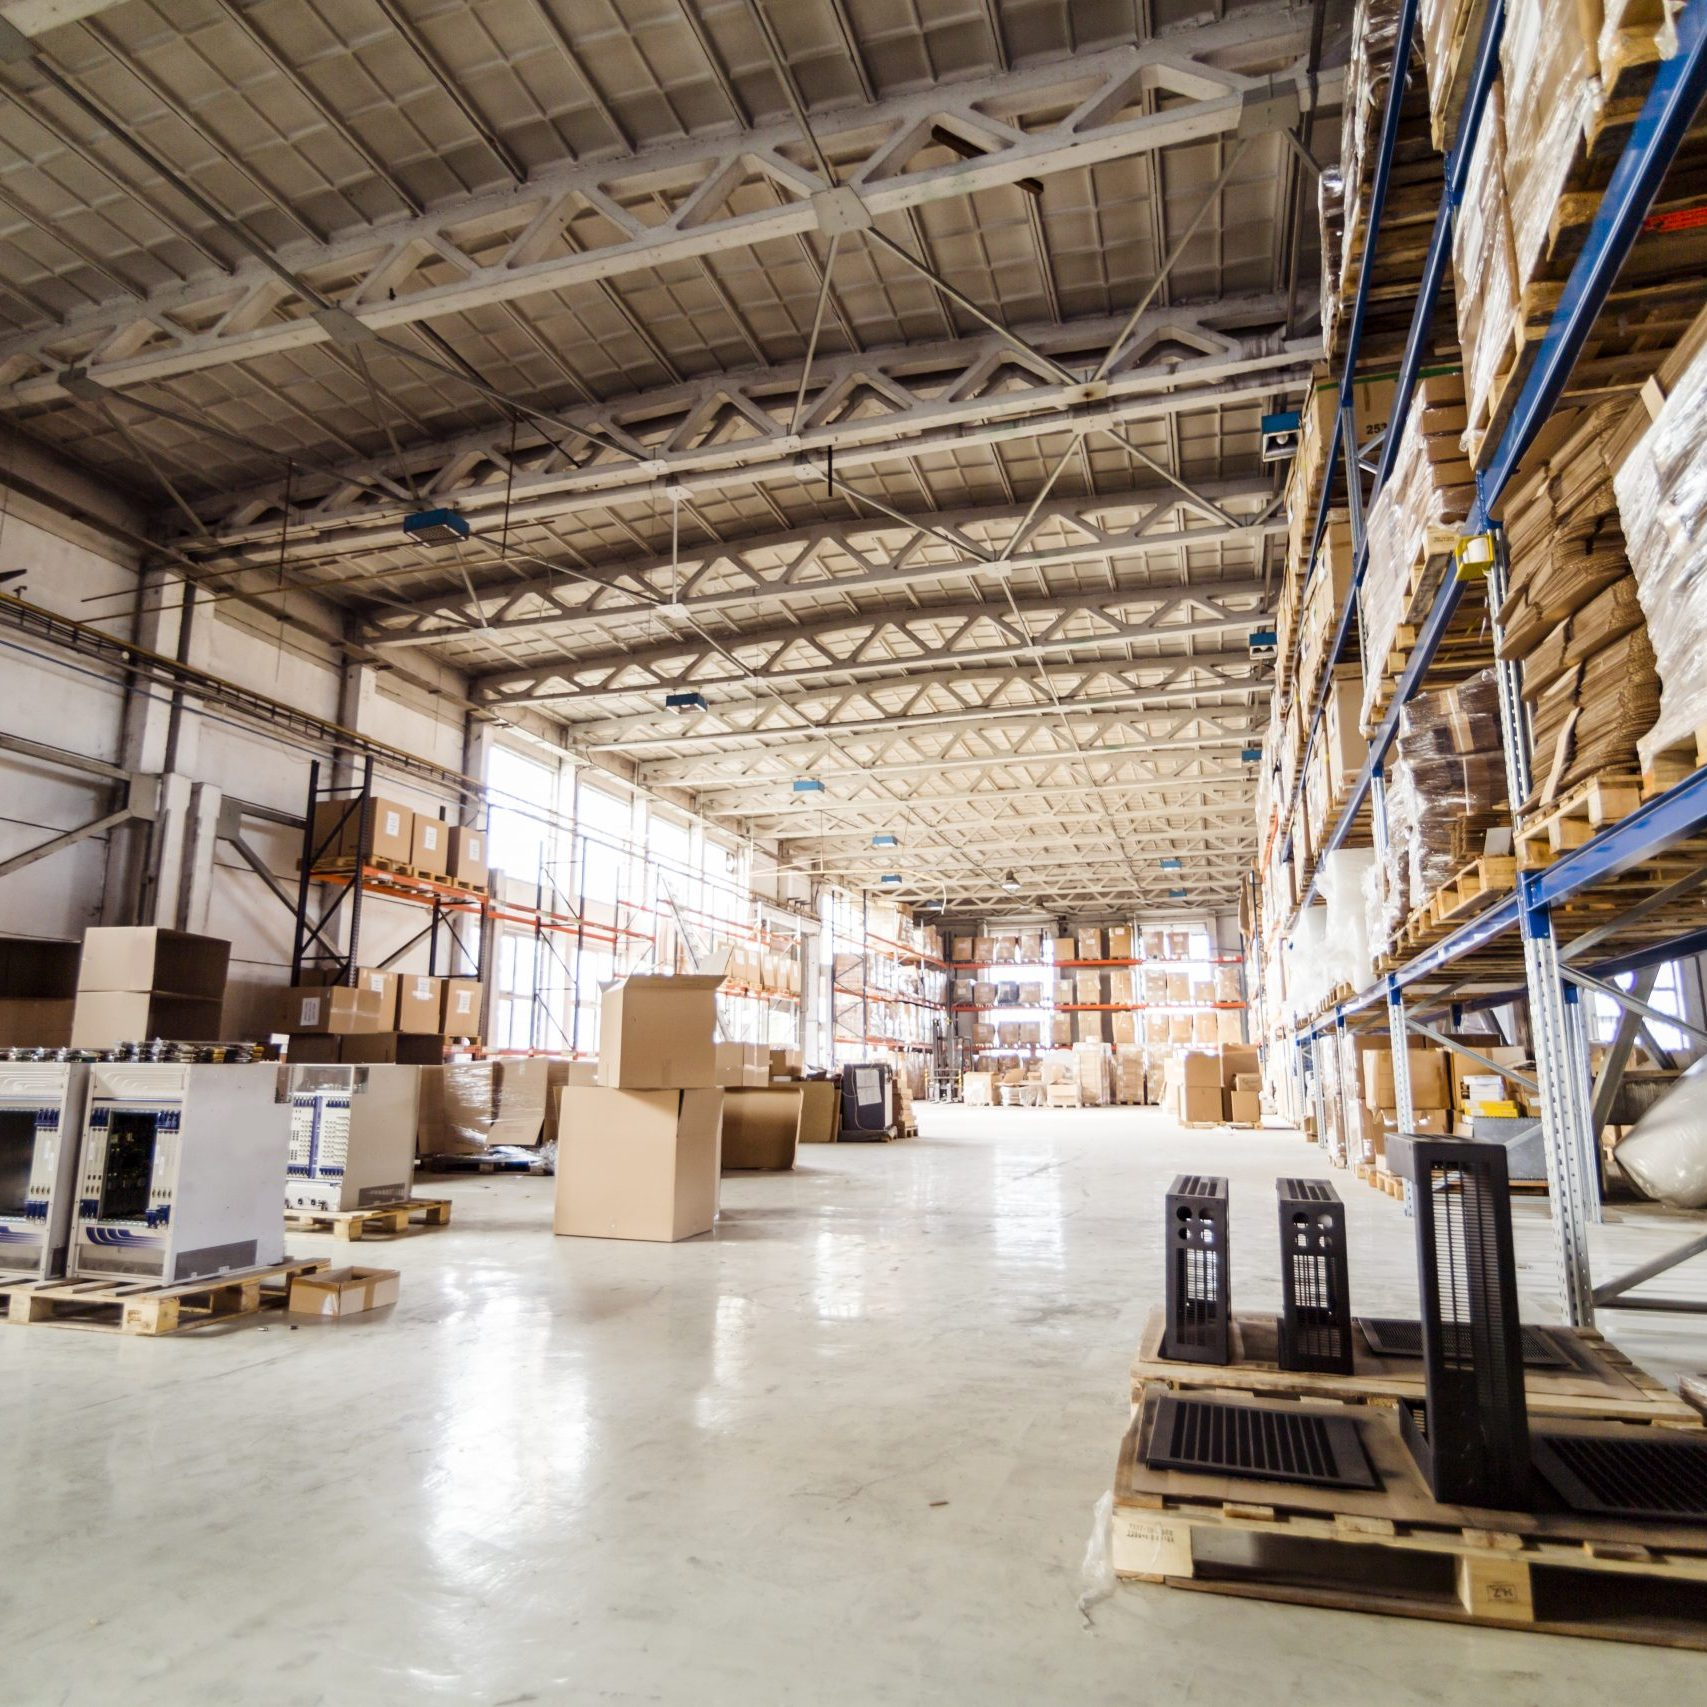 Pallets storing boxes in an industrial warehouse